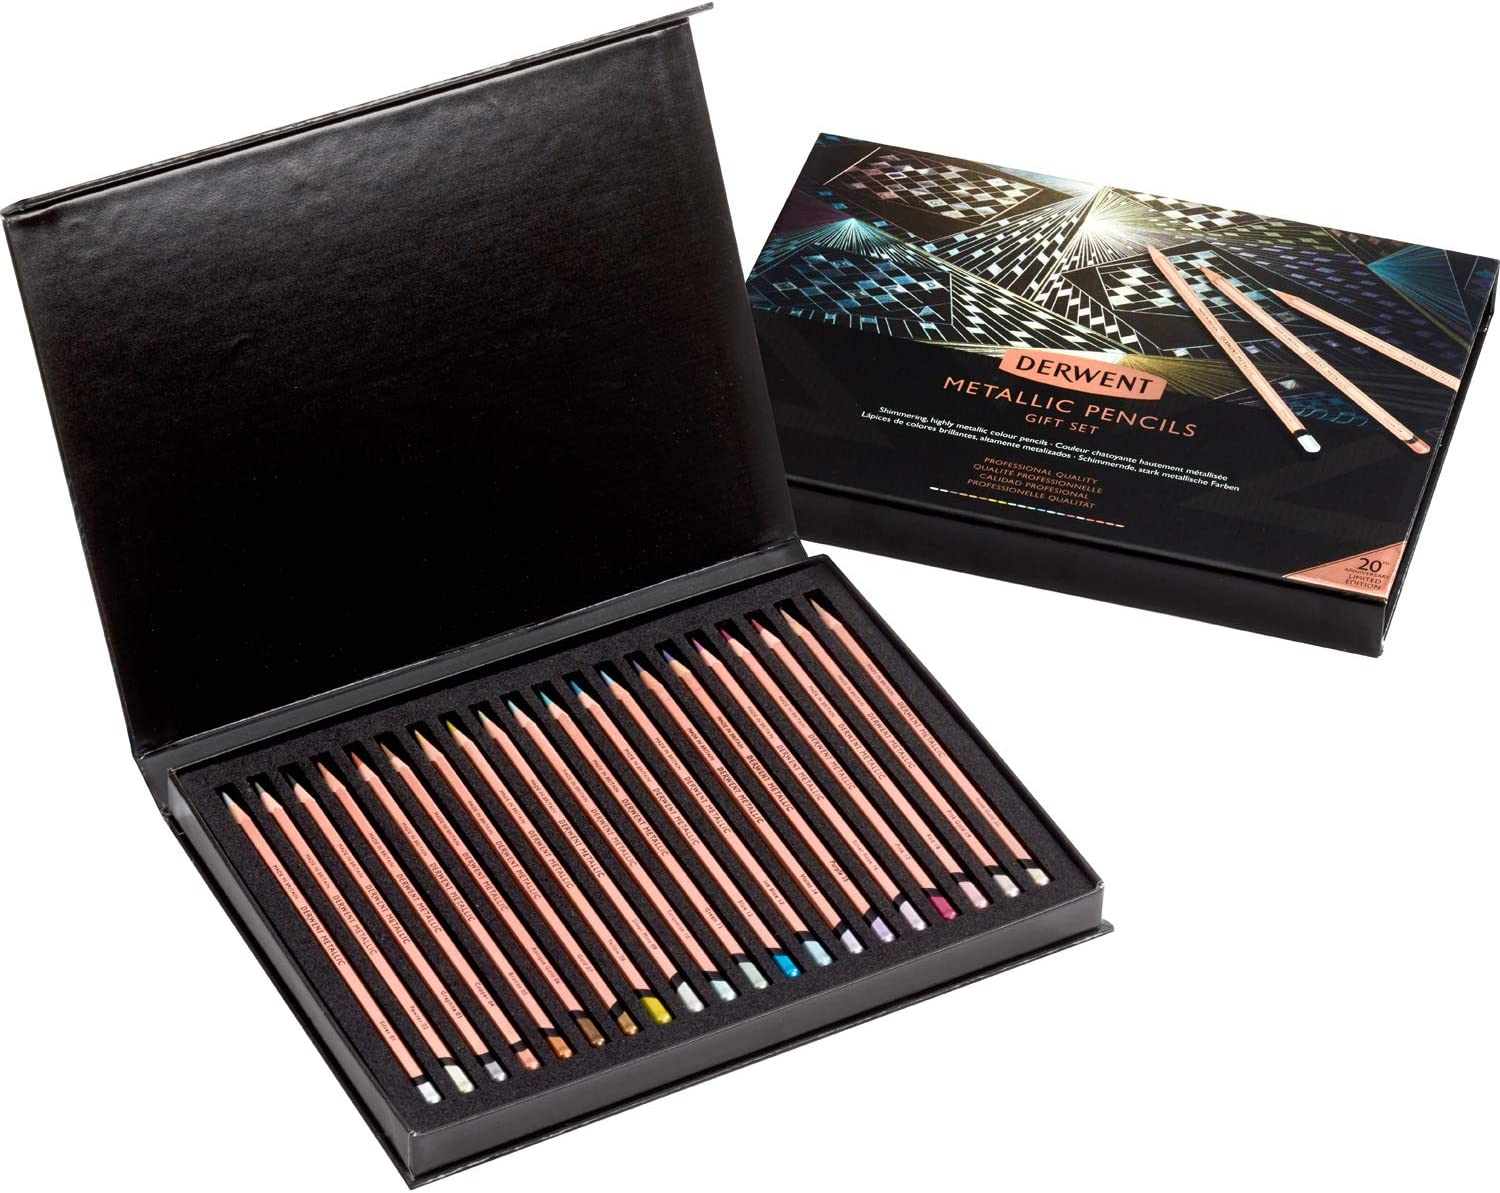 Derwent Metallic Pencil 20th Anniversary Set of 20